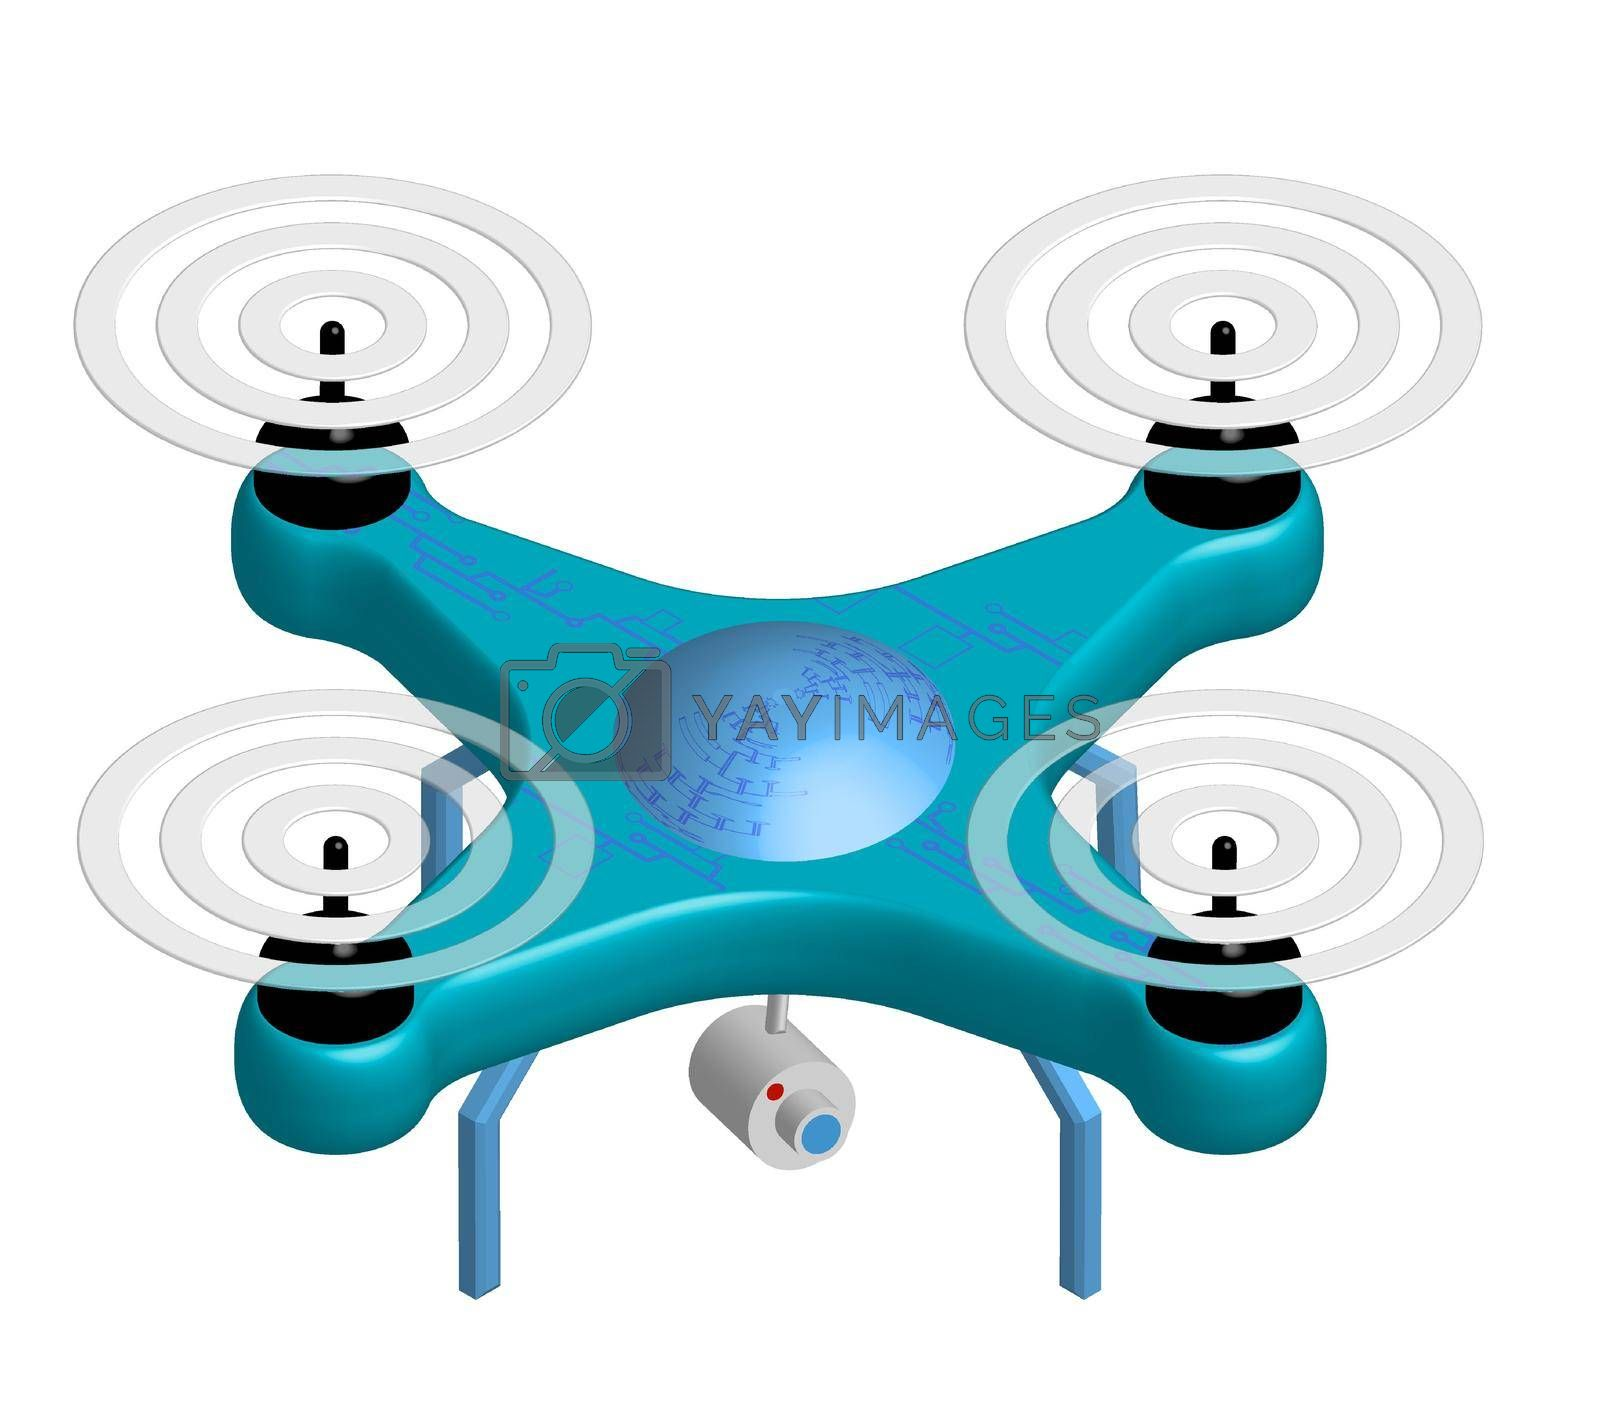 Royalty free image of realistic drone with a video camera, copter on a white background. New ways to track and deliver. Isolated vector by RNko